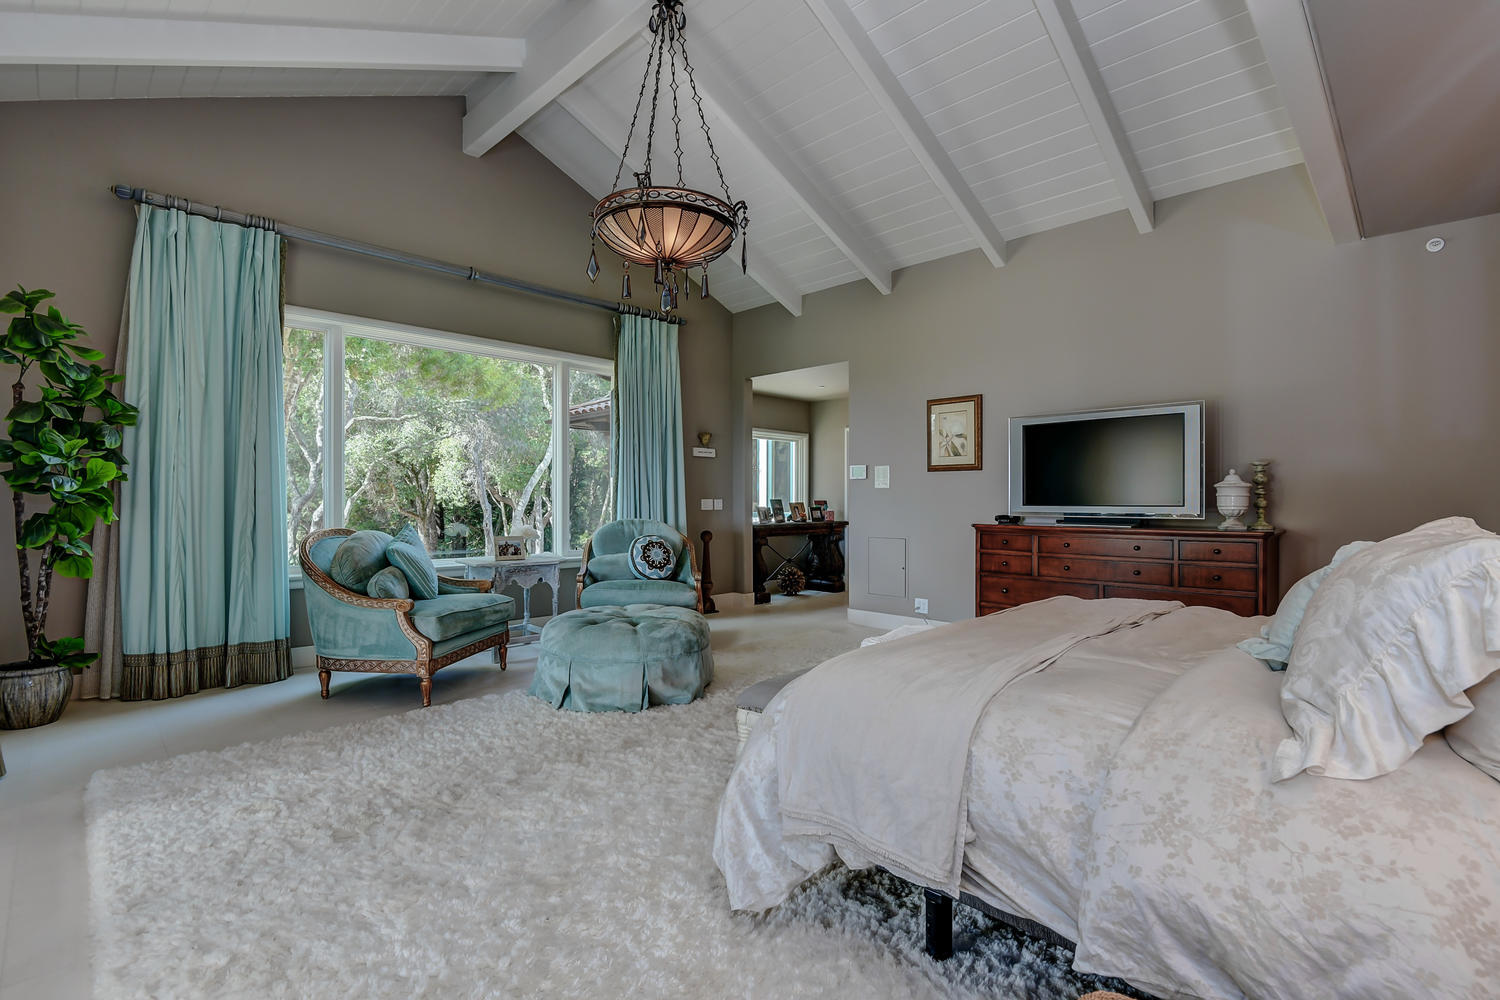 21_3737 Coyote Canyon Soquel CA-large-026-45-Master Bedroom View-1500x1000-72dpi.jpg